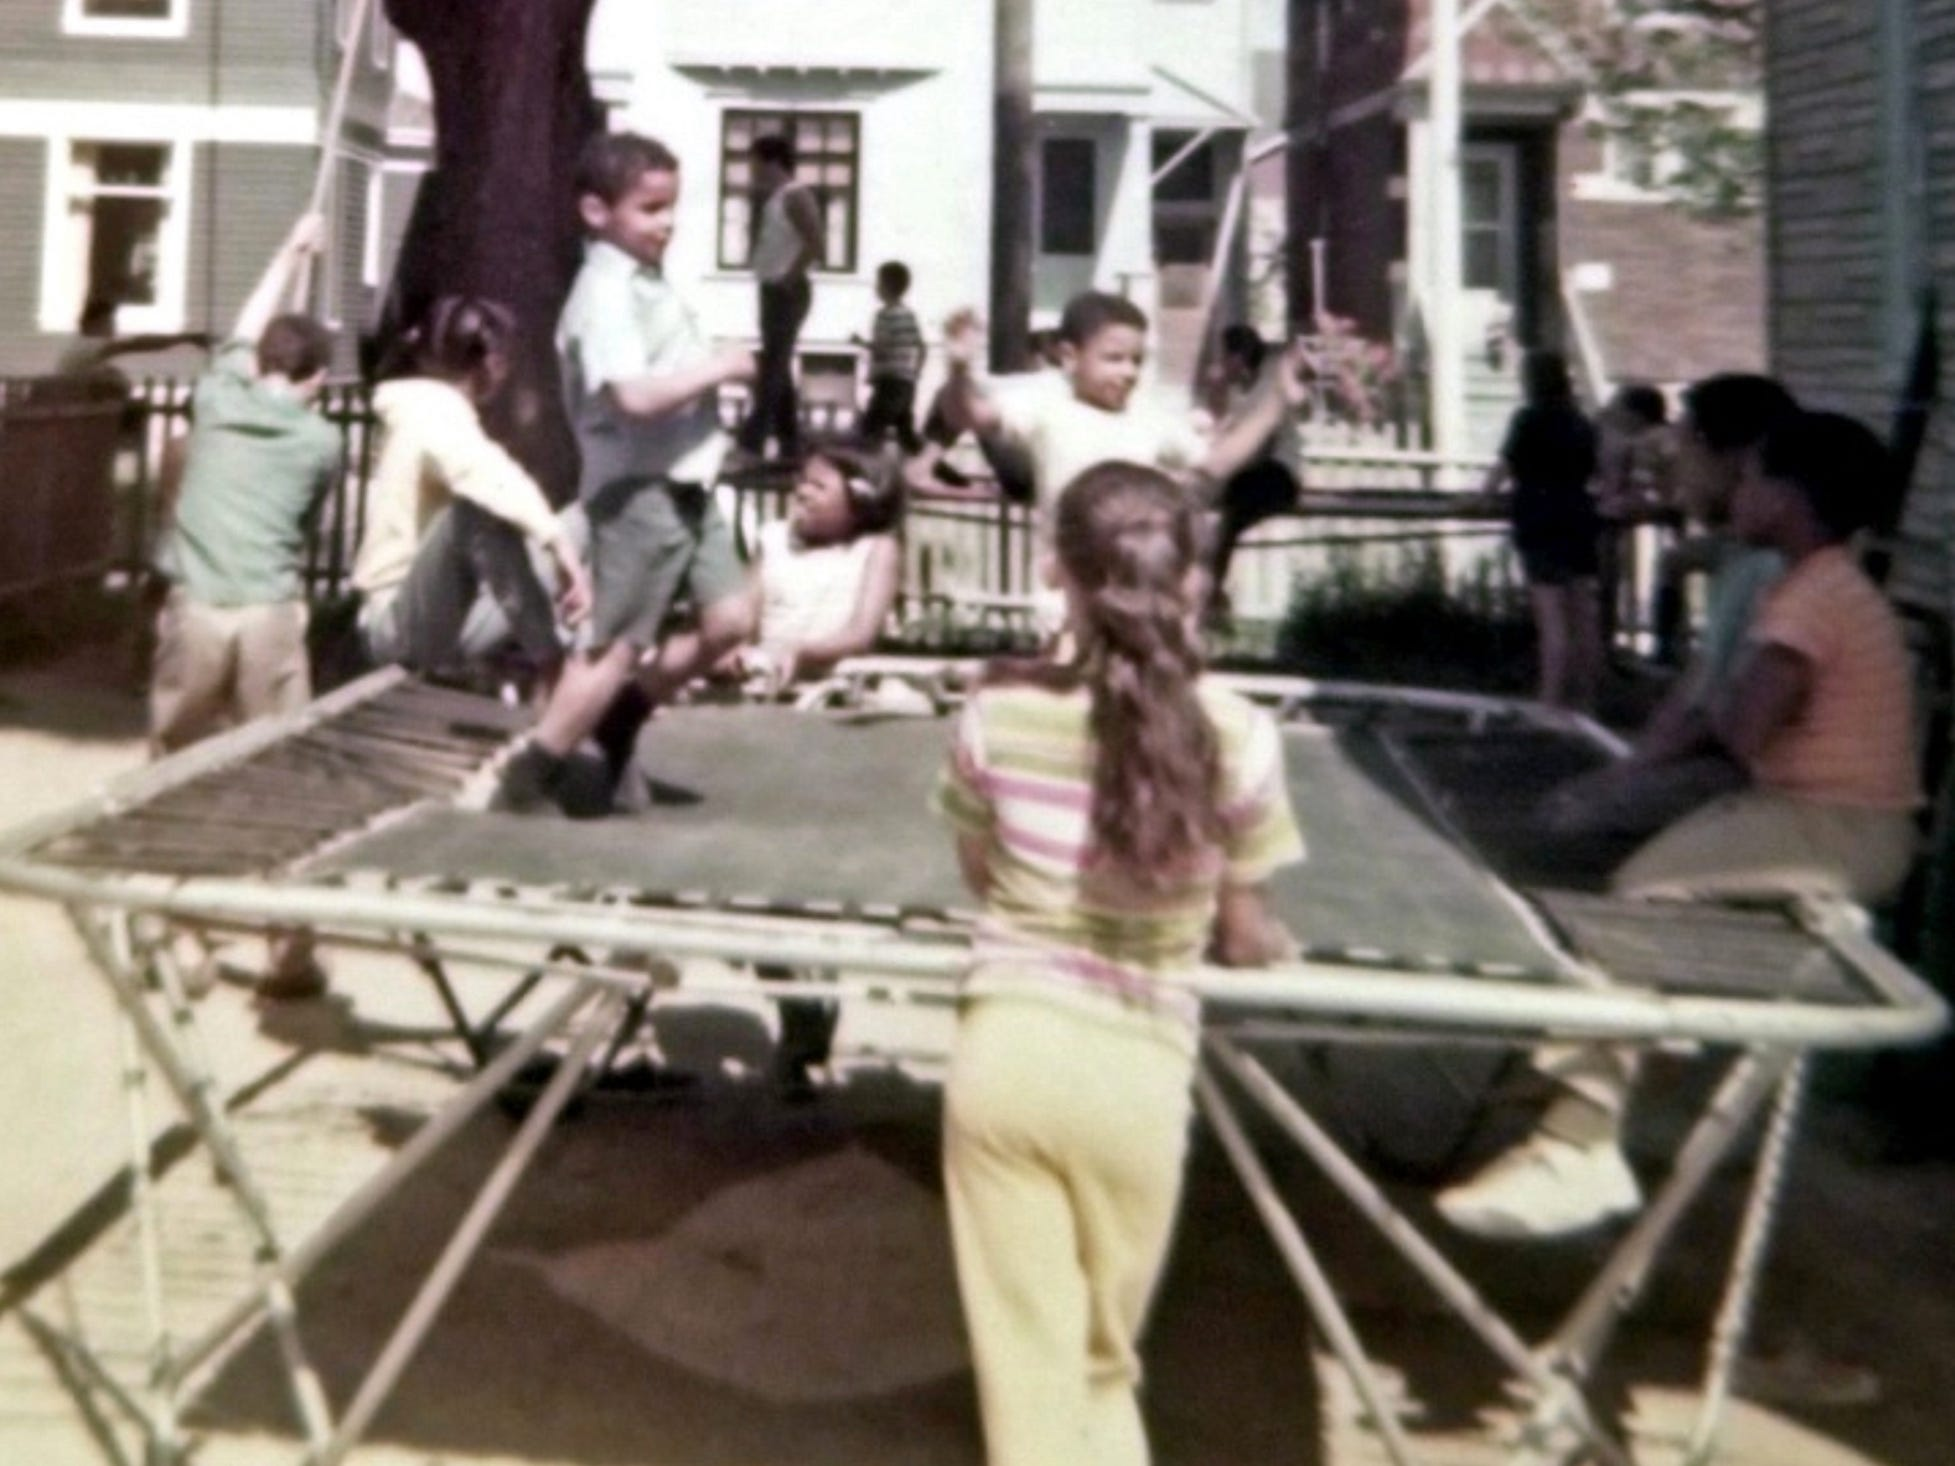 Children frolic in the backyard gymnasium of Bob Paquette's Merrill Park home in the 1970s.